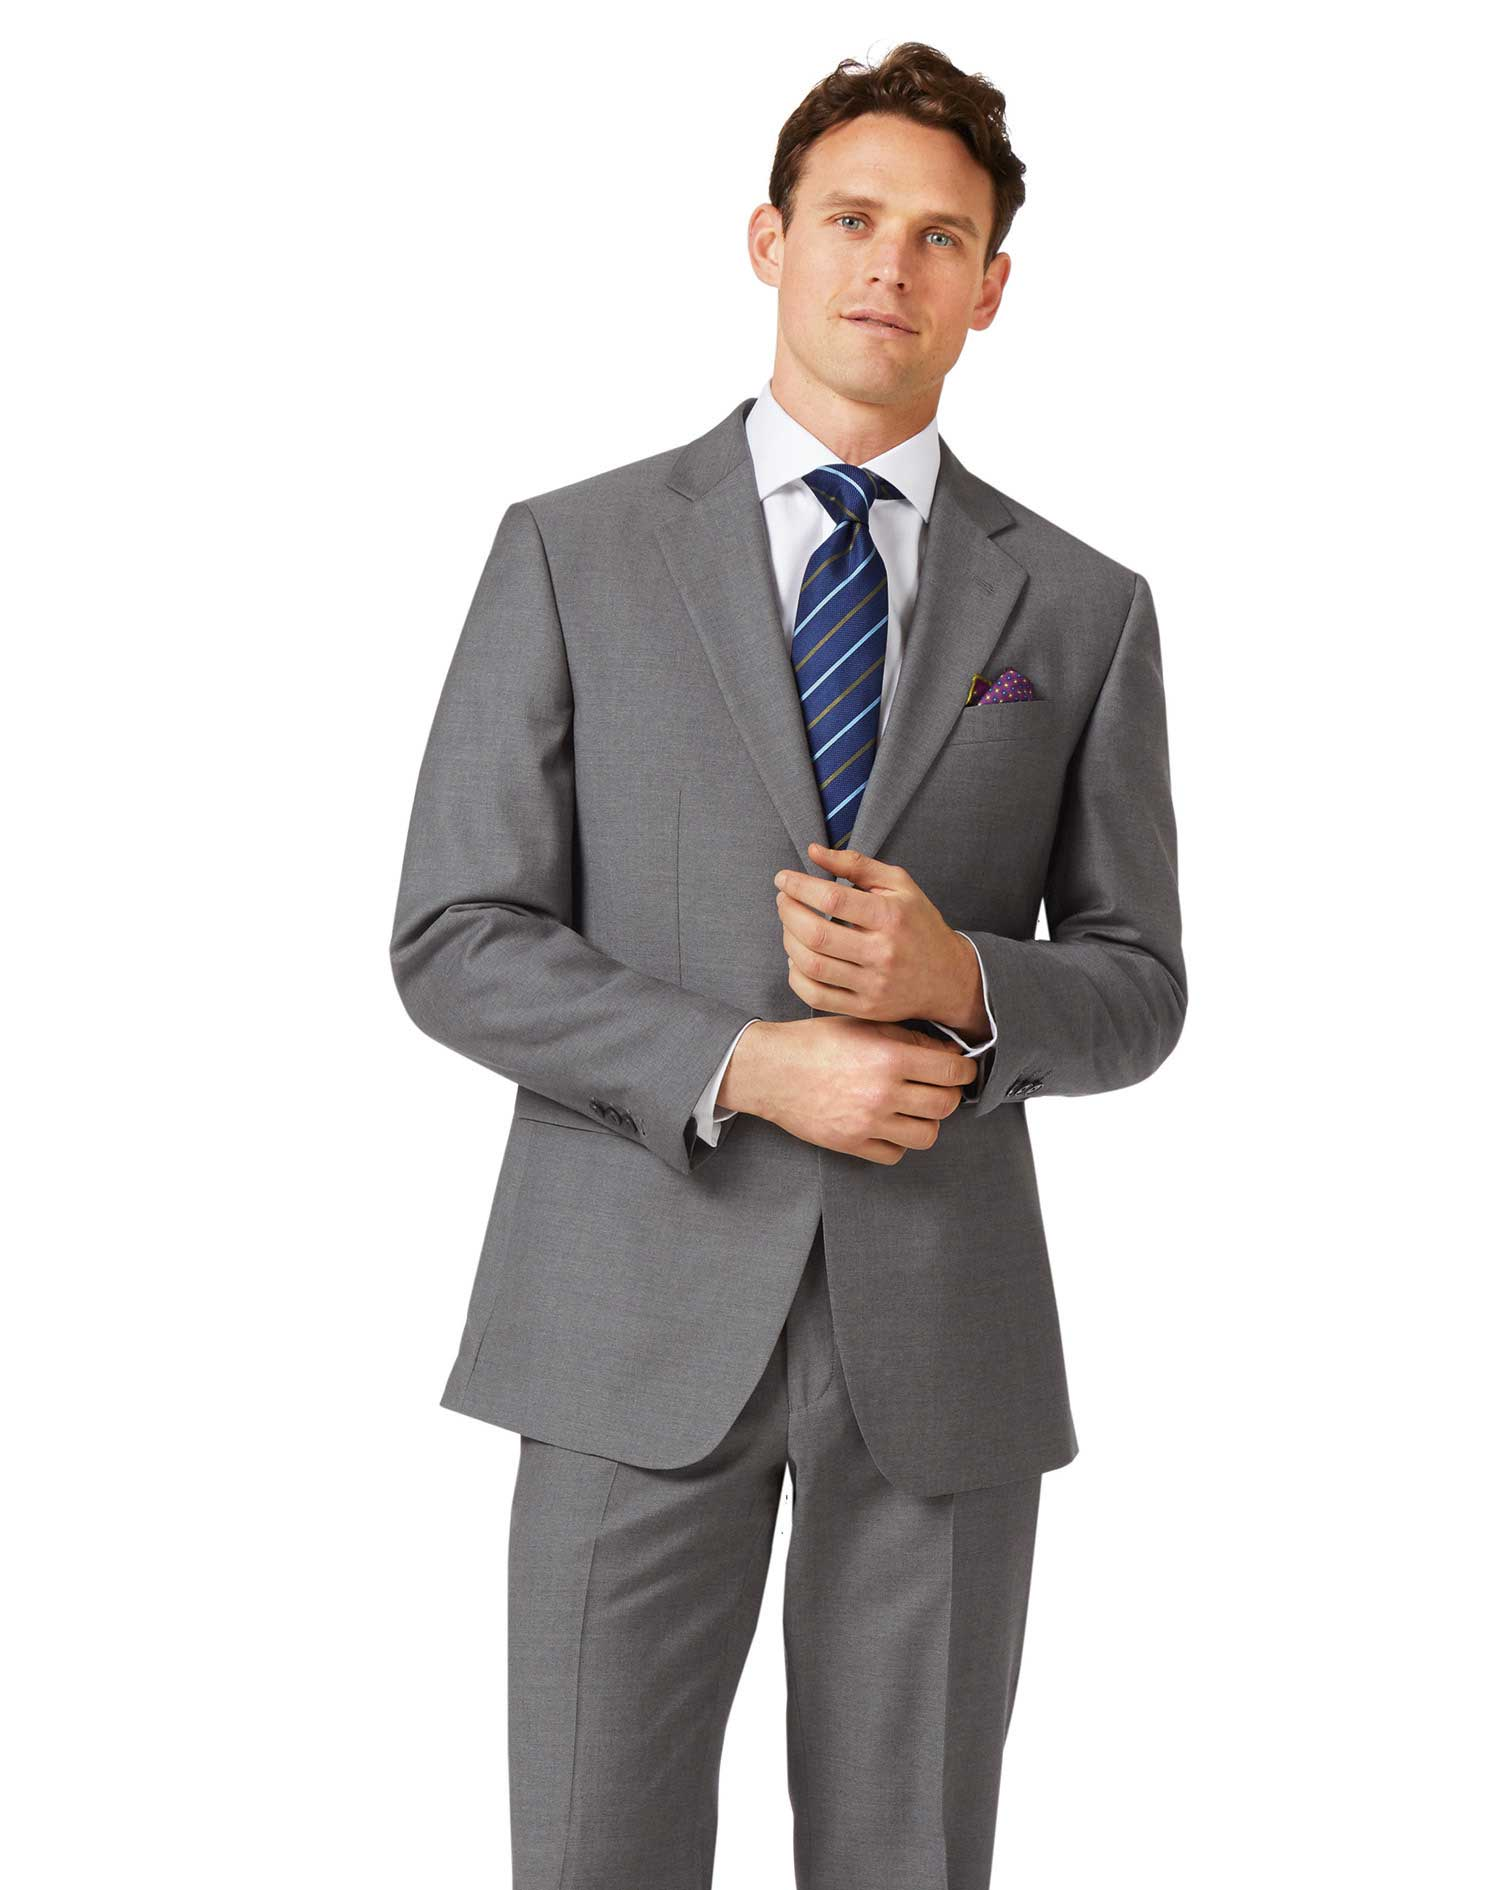 Grey Classic Fit Twill Business Suit Wool Jacket Size 48 Regular by Charles Tyrwhitt